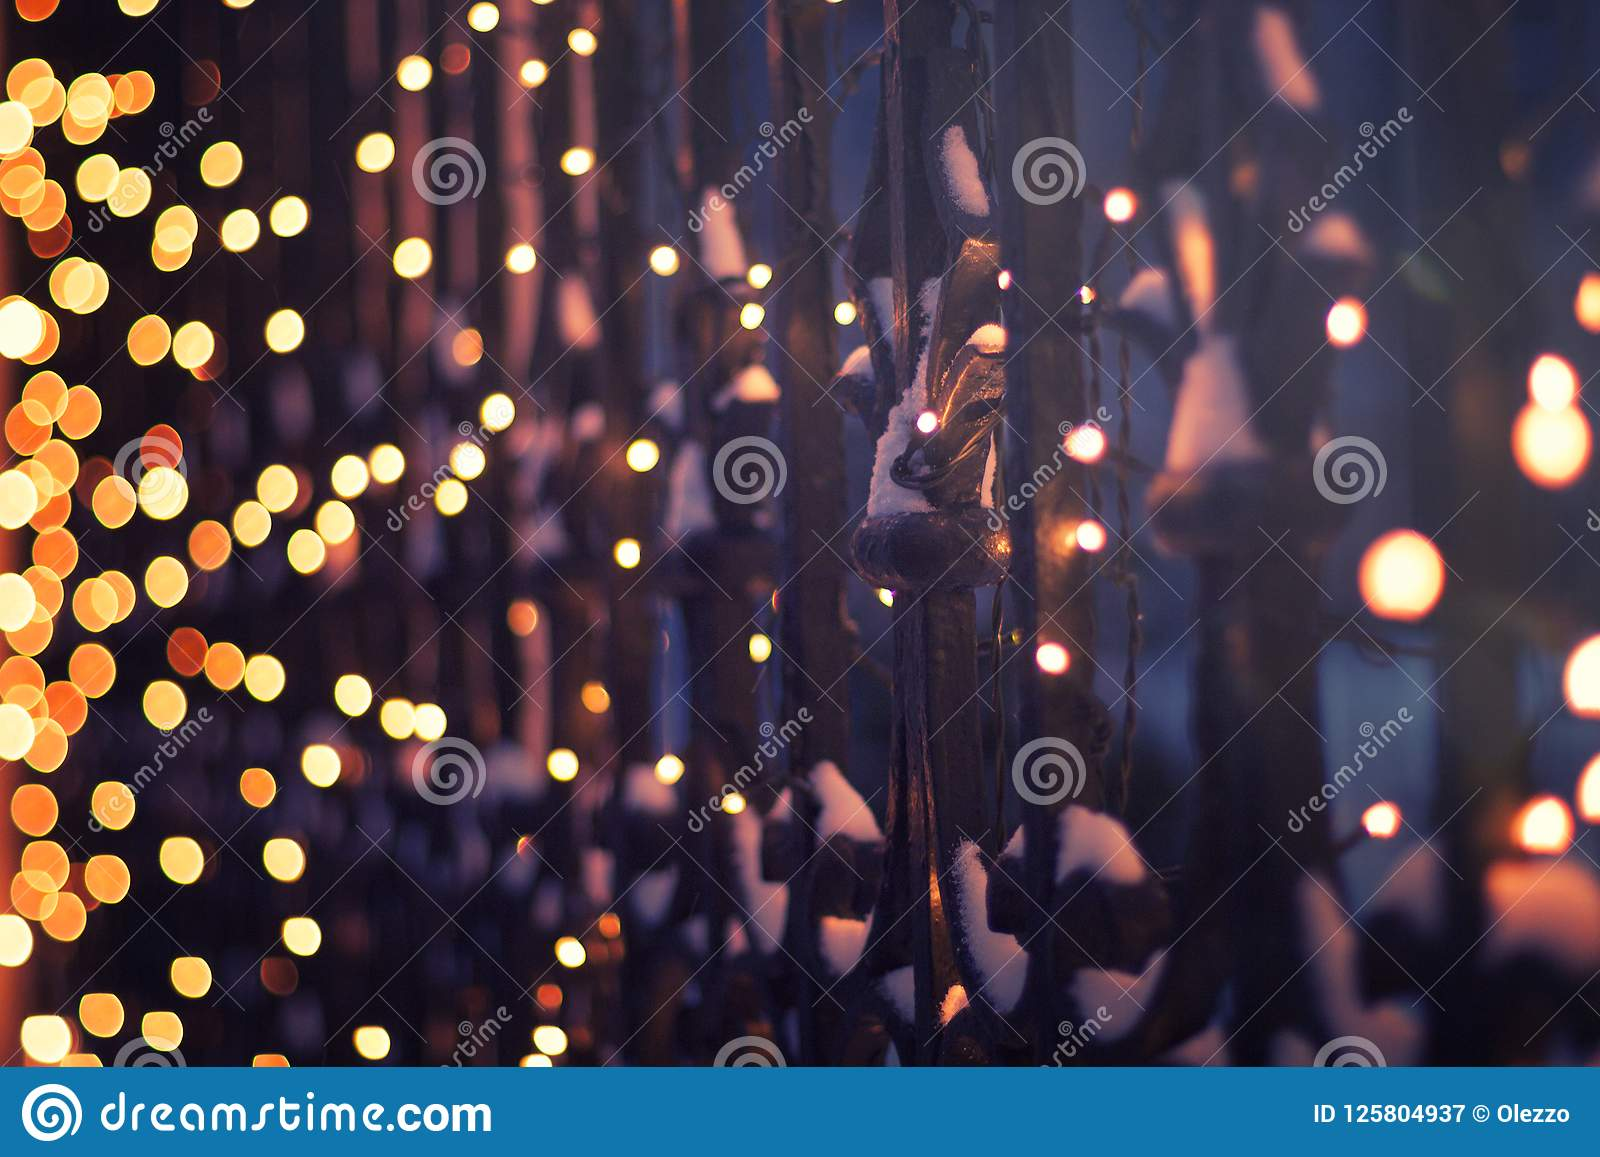 Festive illumination on the fence in the evening winter time, ab